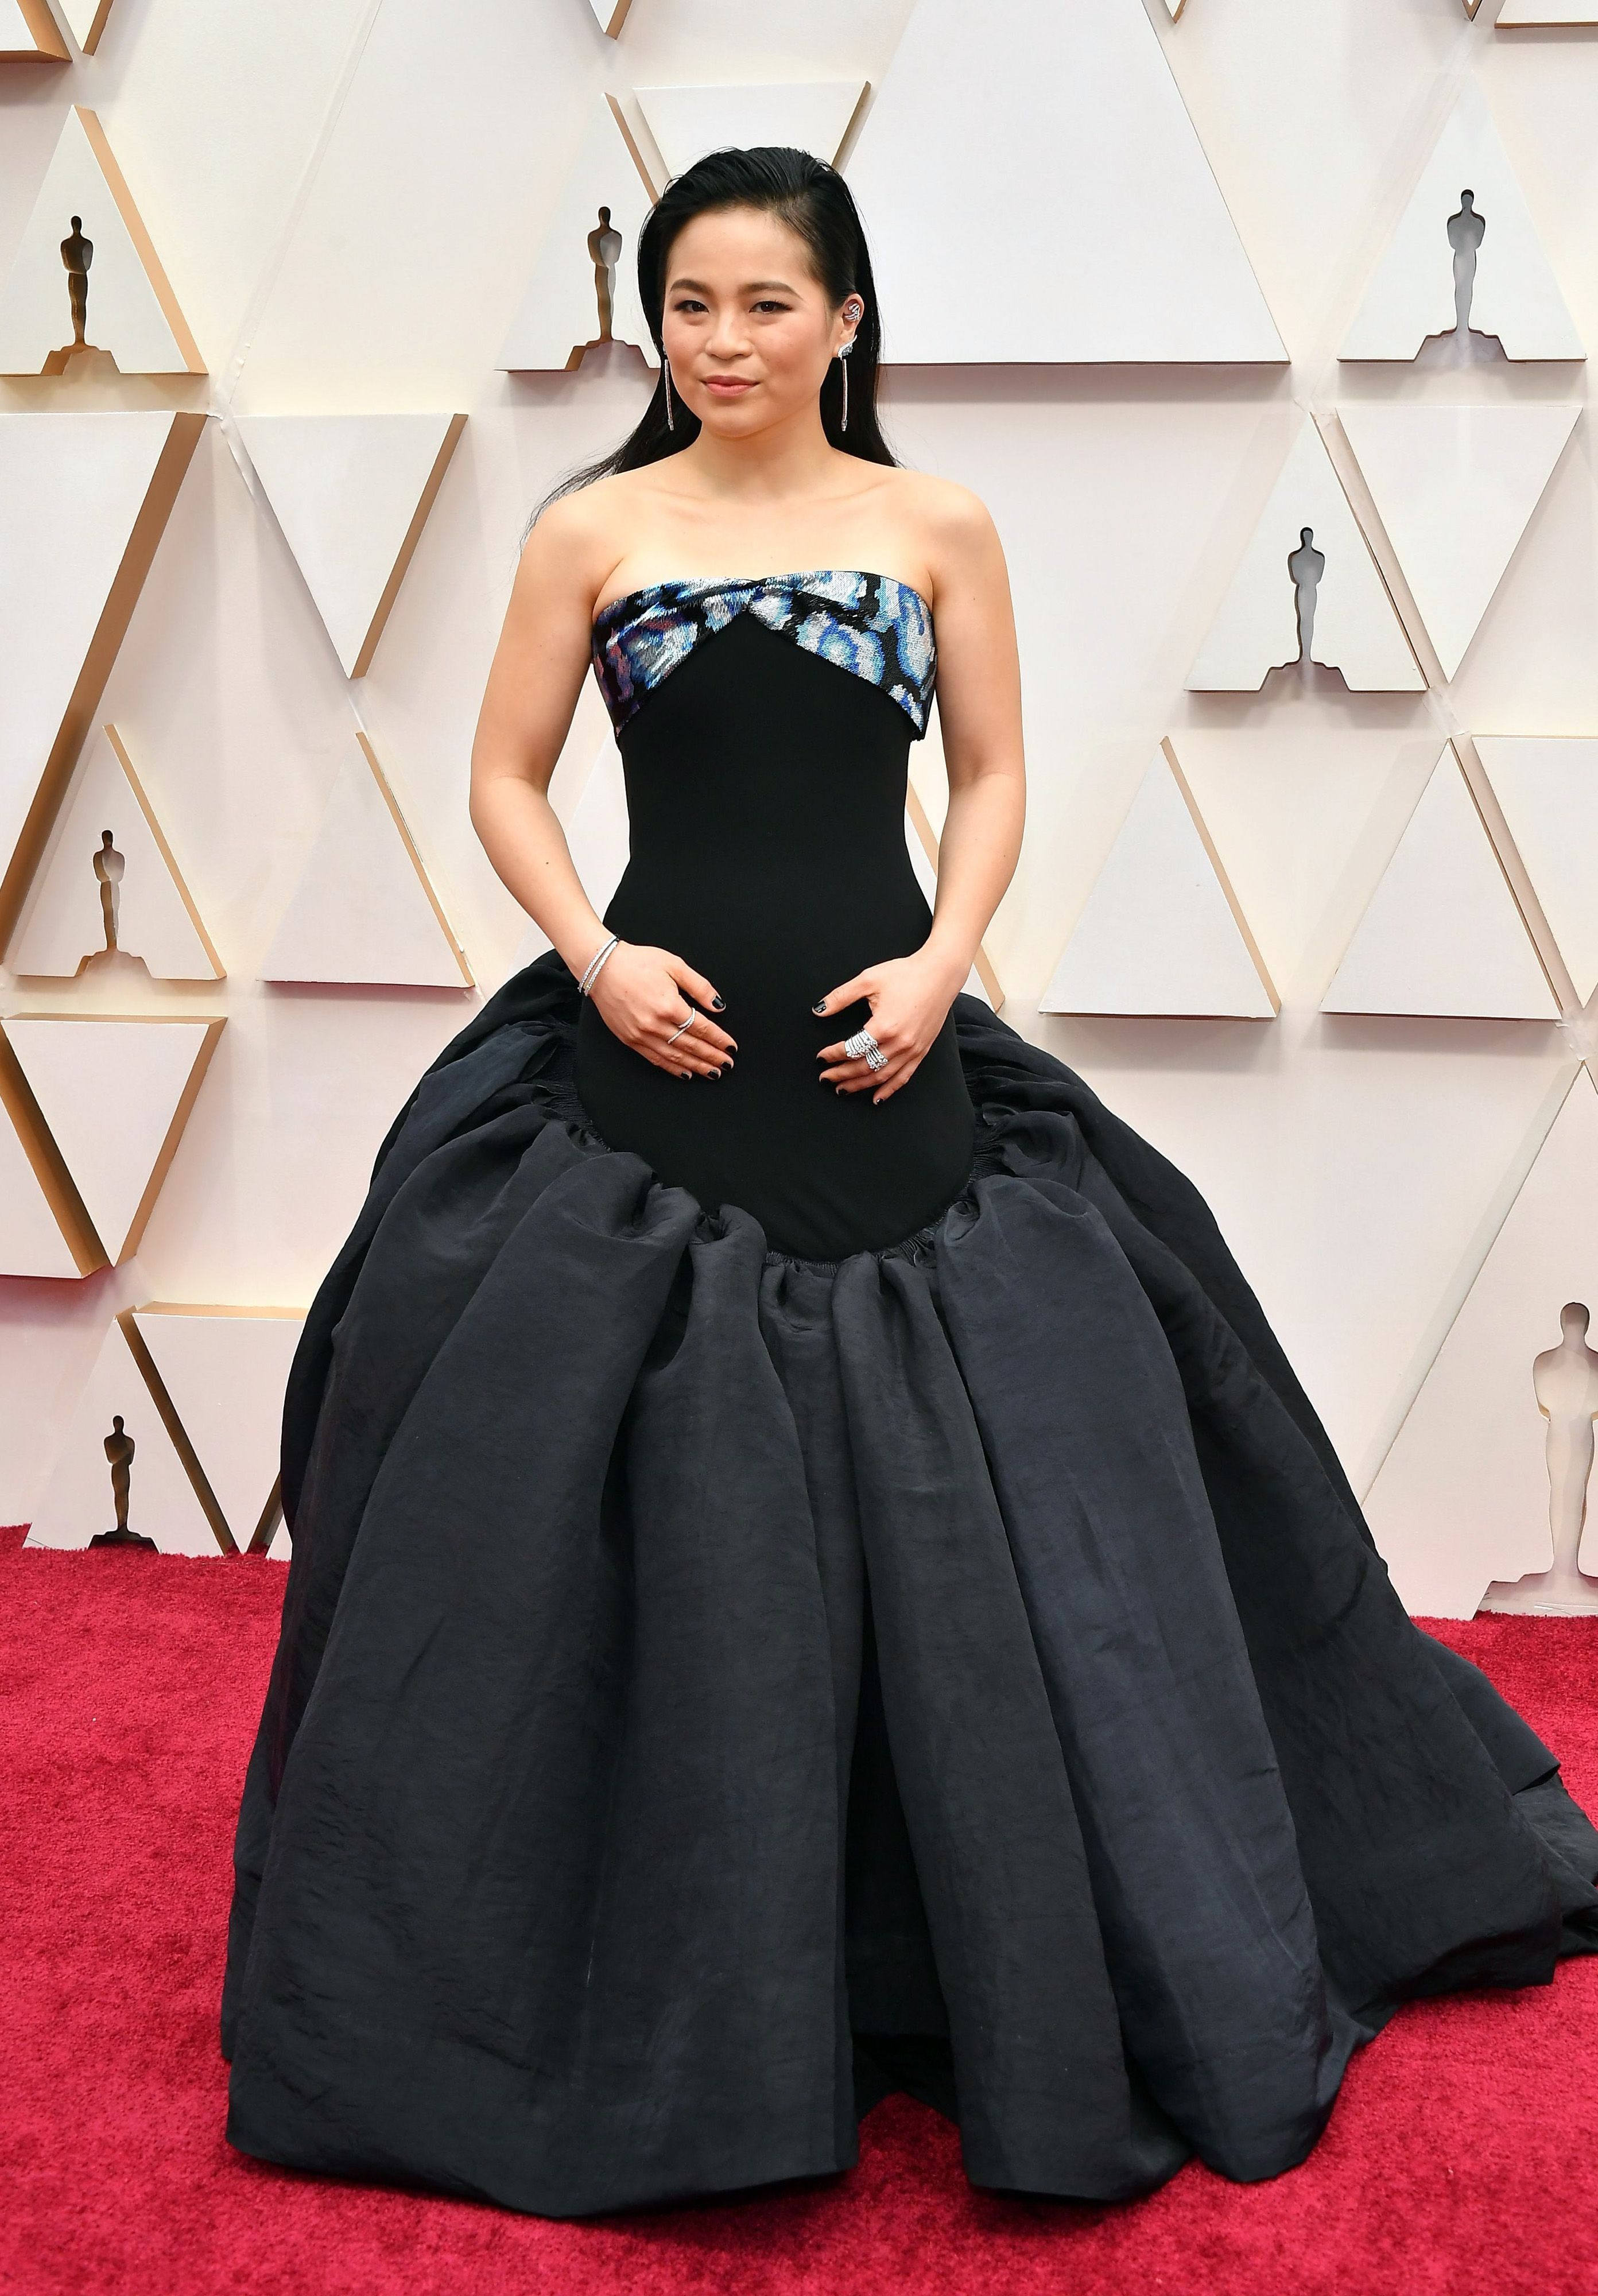 HOLLYWOOD, CALIFORNIA - FEBRUARY 09: Kelly Marie Tran attends the 92nd Annual Academy Awards at Hollywood and Highland on February 09, 2020 in Hollywood, California. (Photo by Amy Sussman/Getty Images)